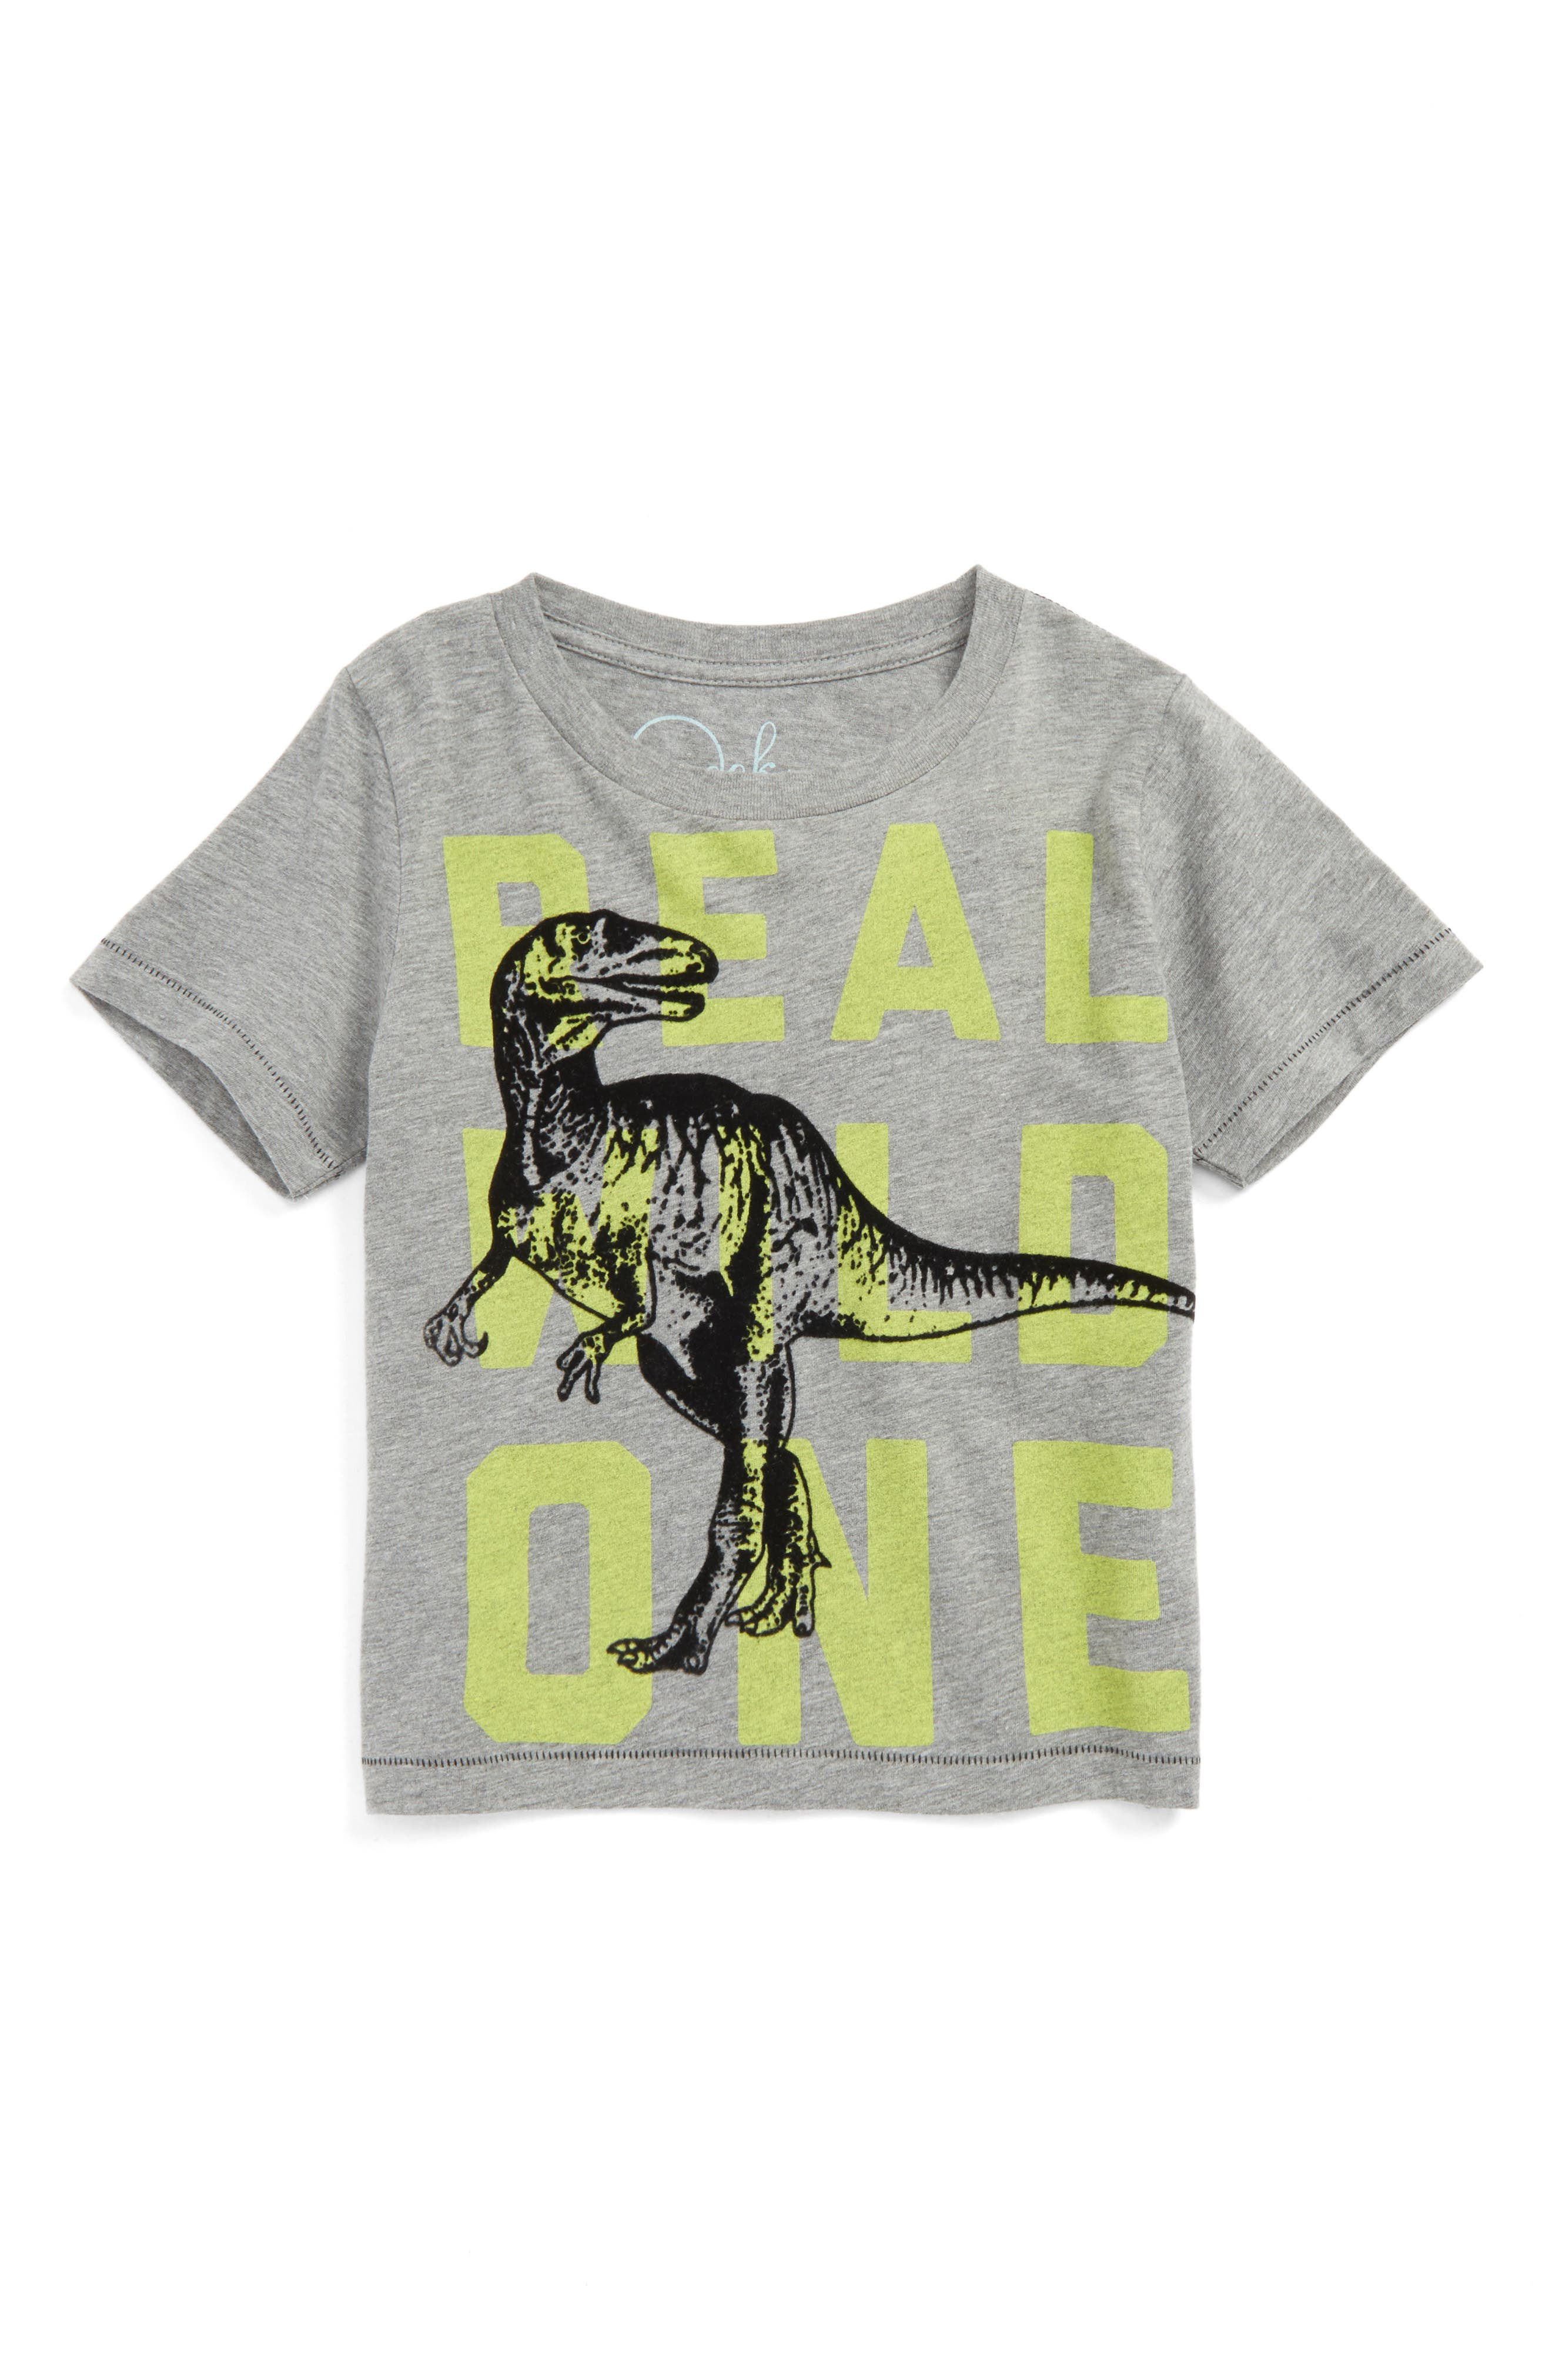 Alternate Image 1 Selected - Peek Real Wild One T-Shirt (Toddler Boys, Little Boys & Big Boys)